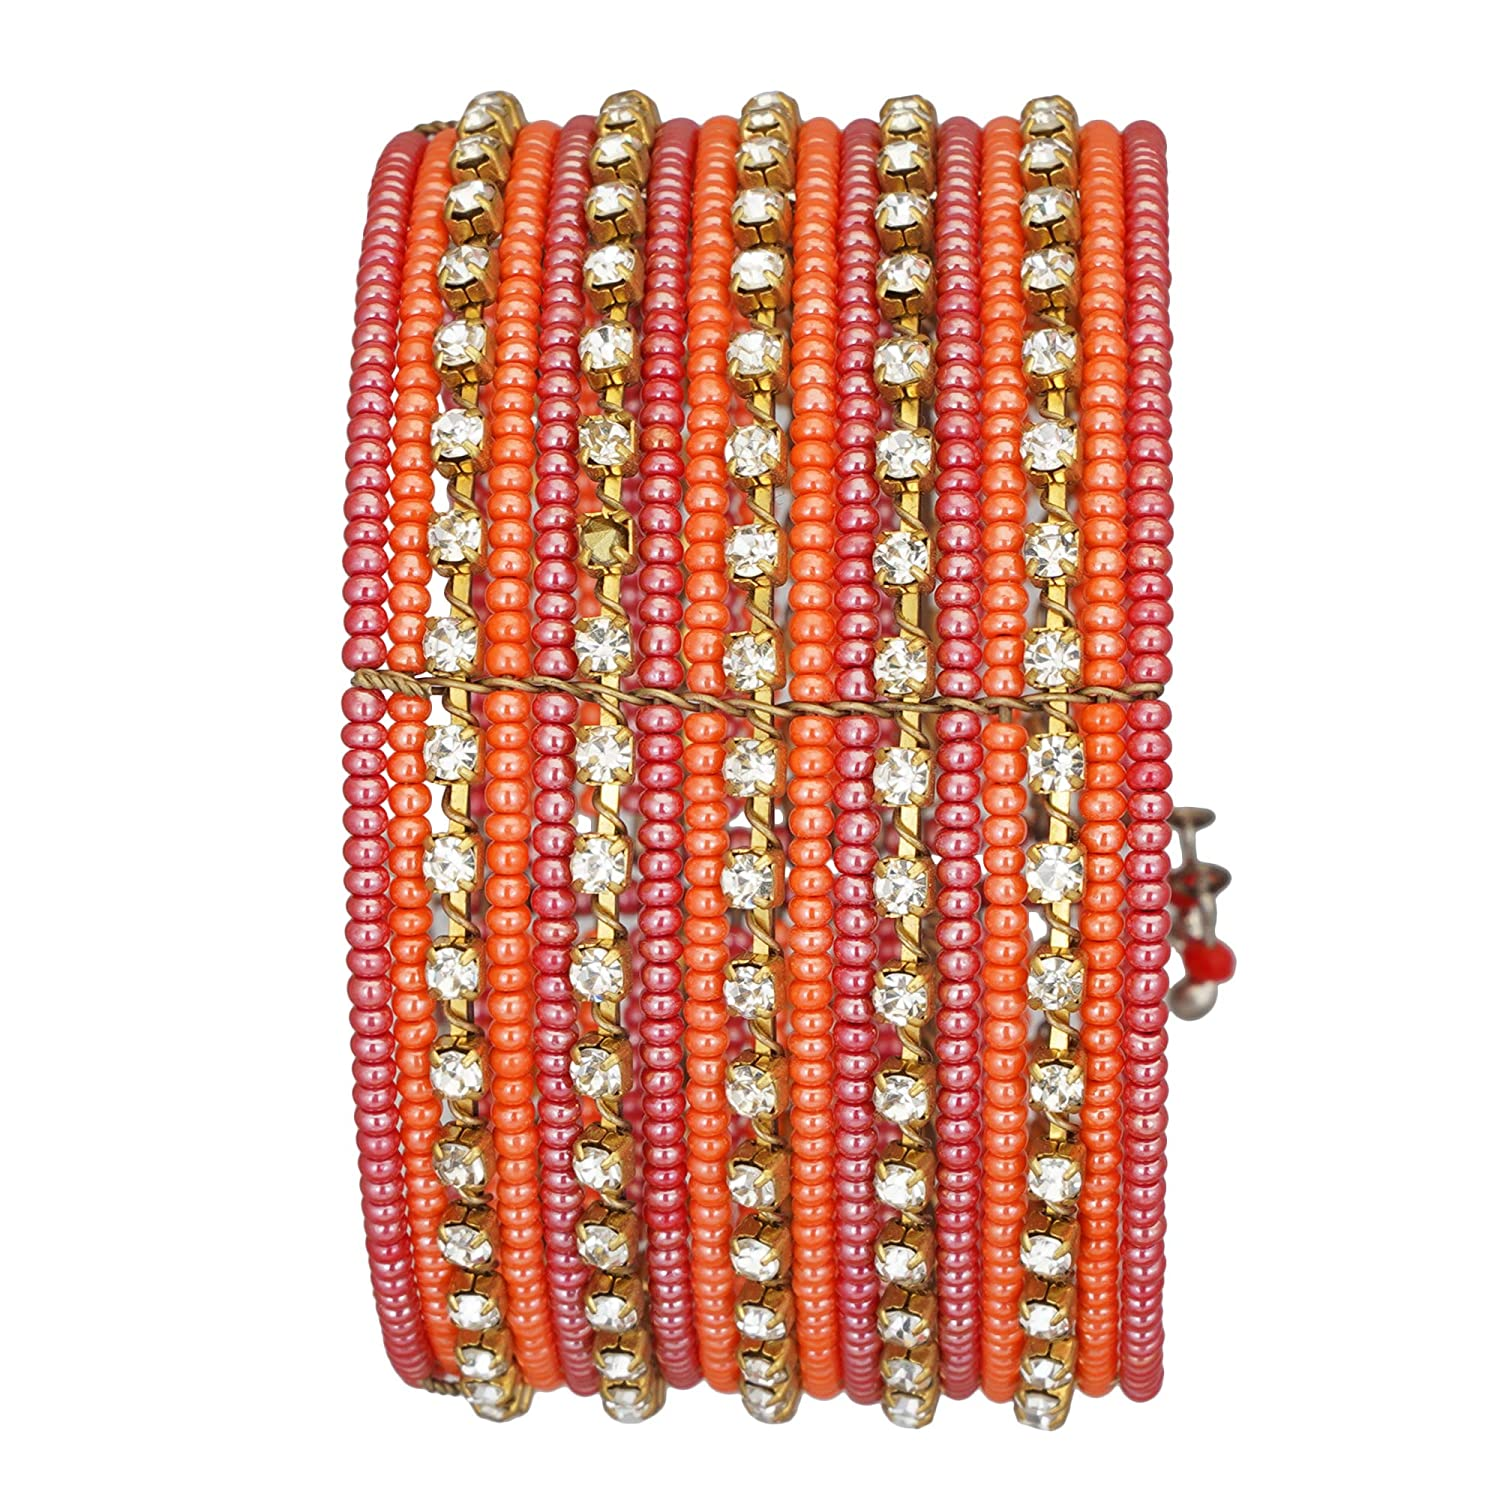 El Allure Glass Seed Bead Red Orange and Gold Spiral Adjustable Partywear Trendy Handicraft Indian Style Bangle with Big Zircon Stone Fine Bangle for Women